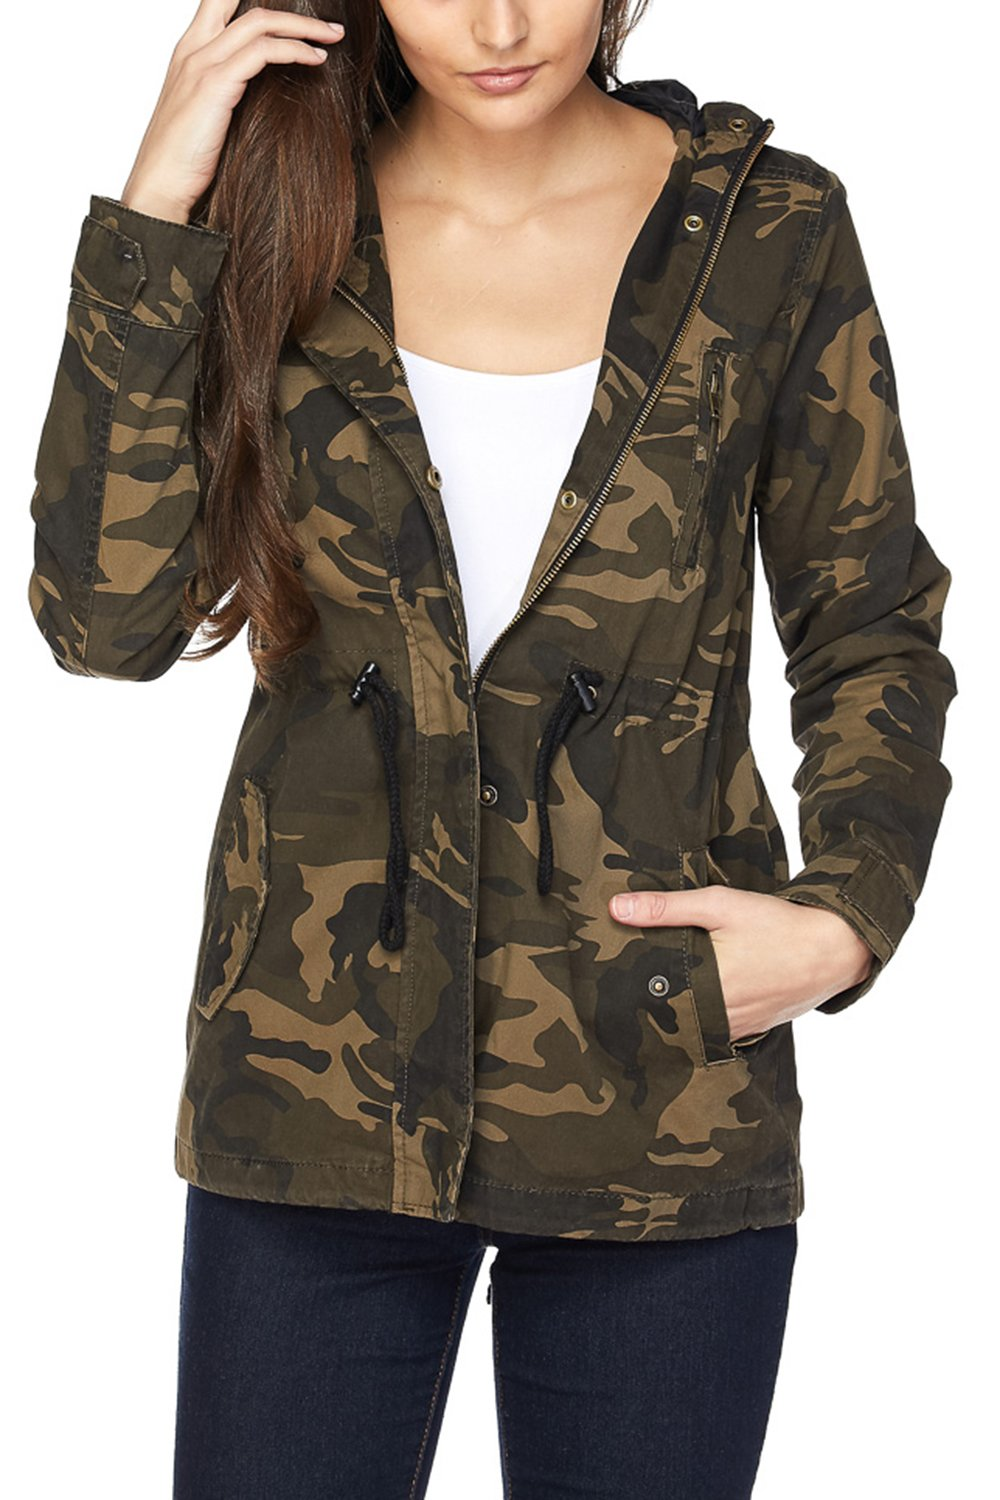 FASHION BOOMY Womens Zip Up Military Anorak Jacket W/Hood (Large, CAMO_2)